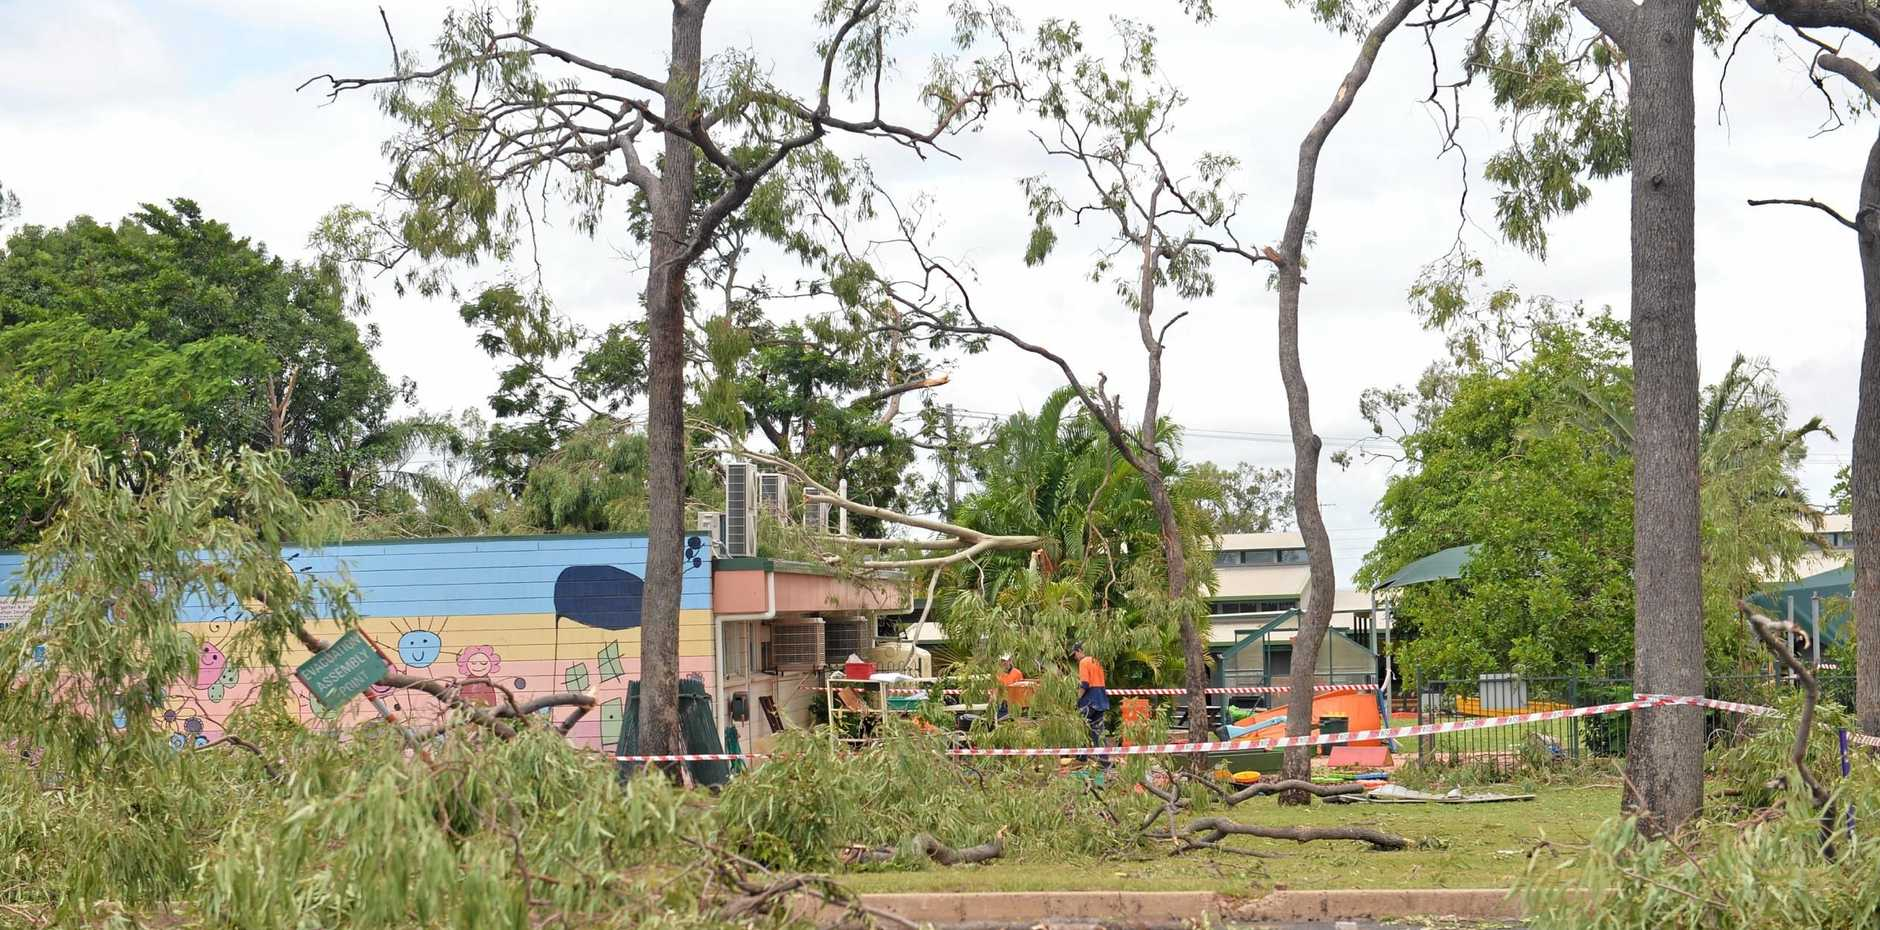 Foliage strewn across the Isaac Regional Council carpark after cyclonic winds swept through the central Queensland town.